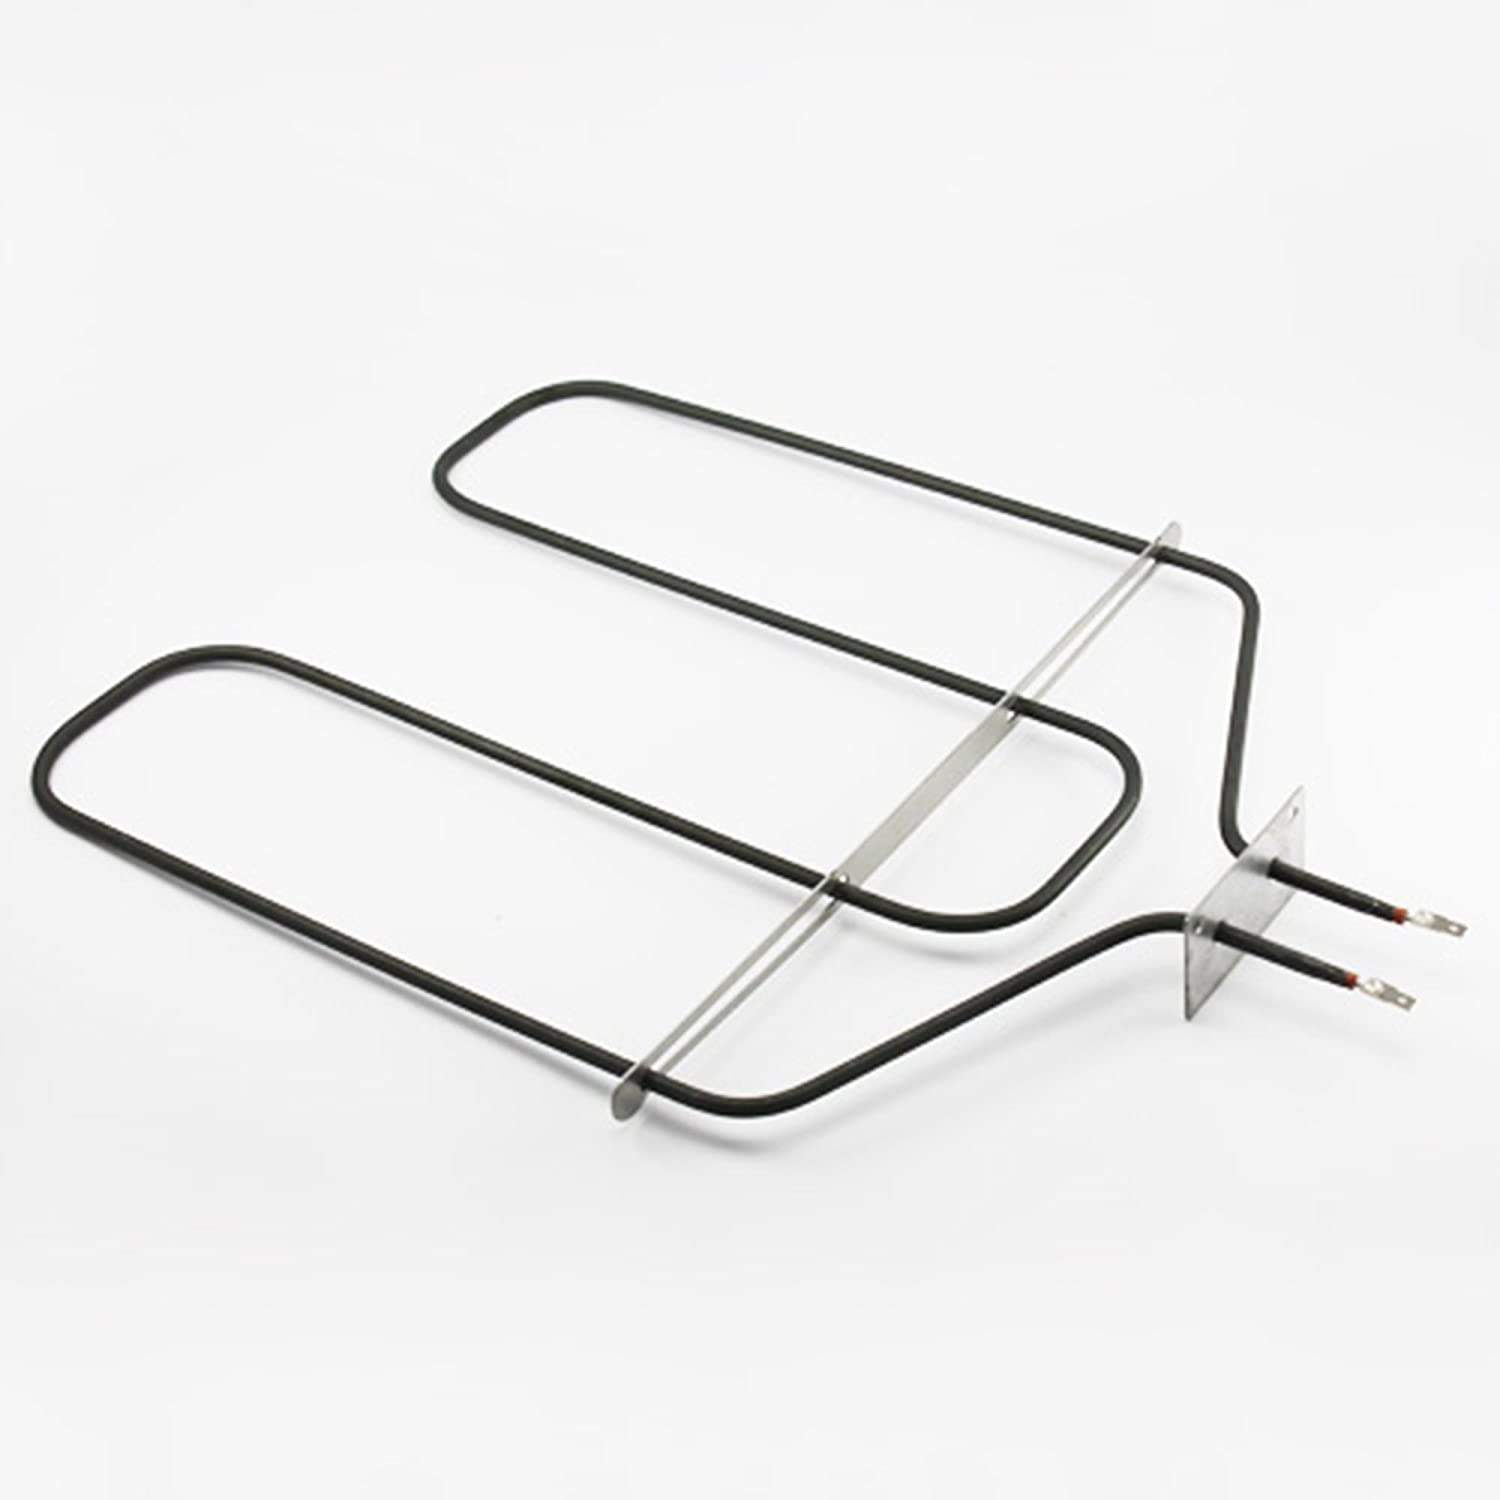 General Electric WB44K10002 Range/Stove/Oven Broil Element